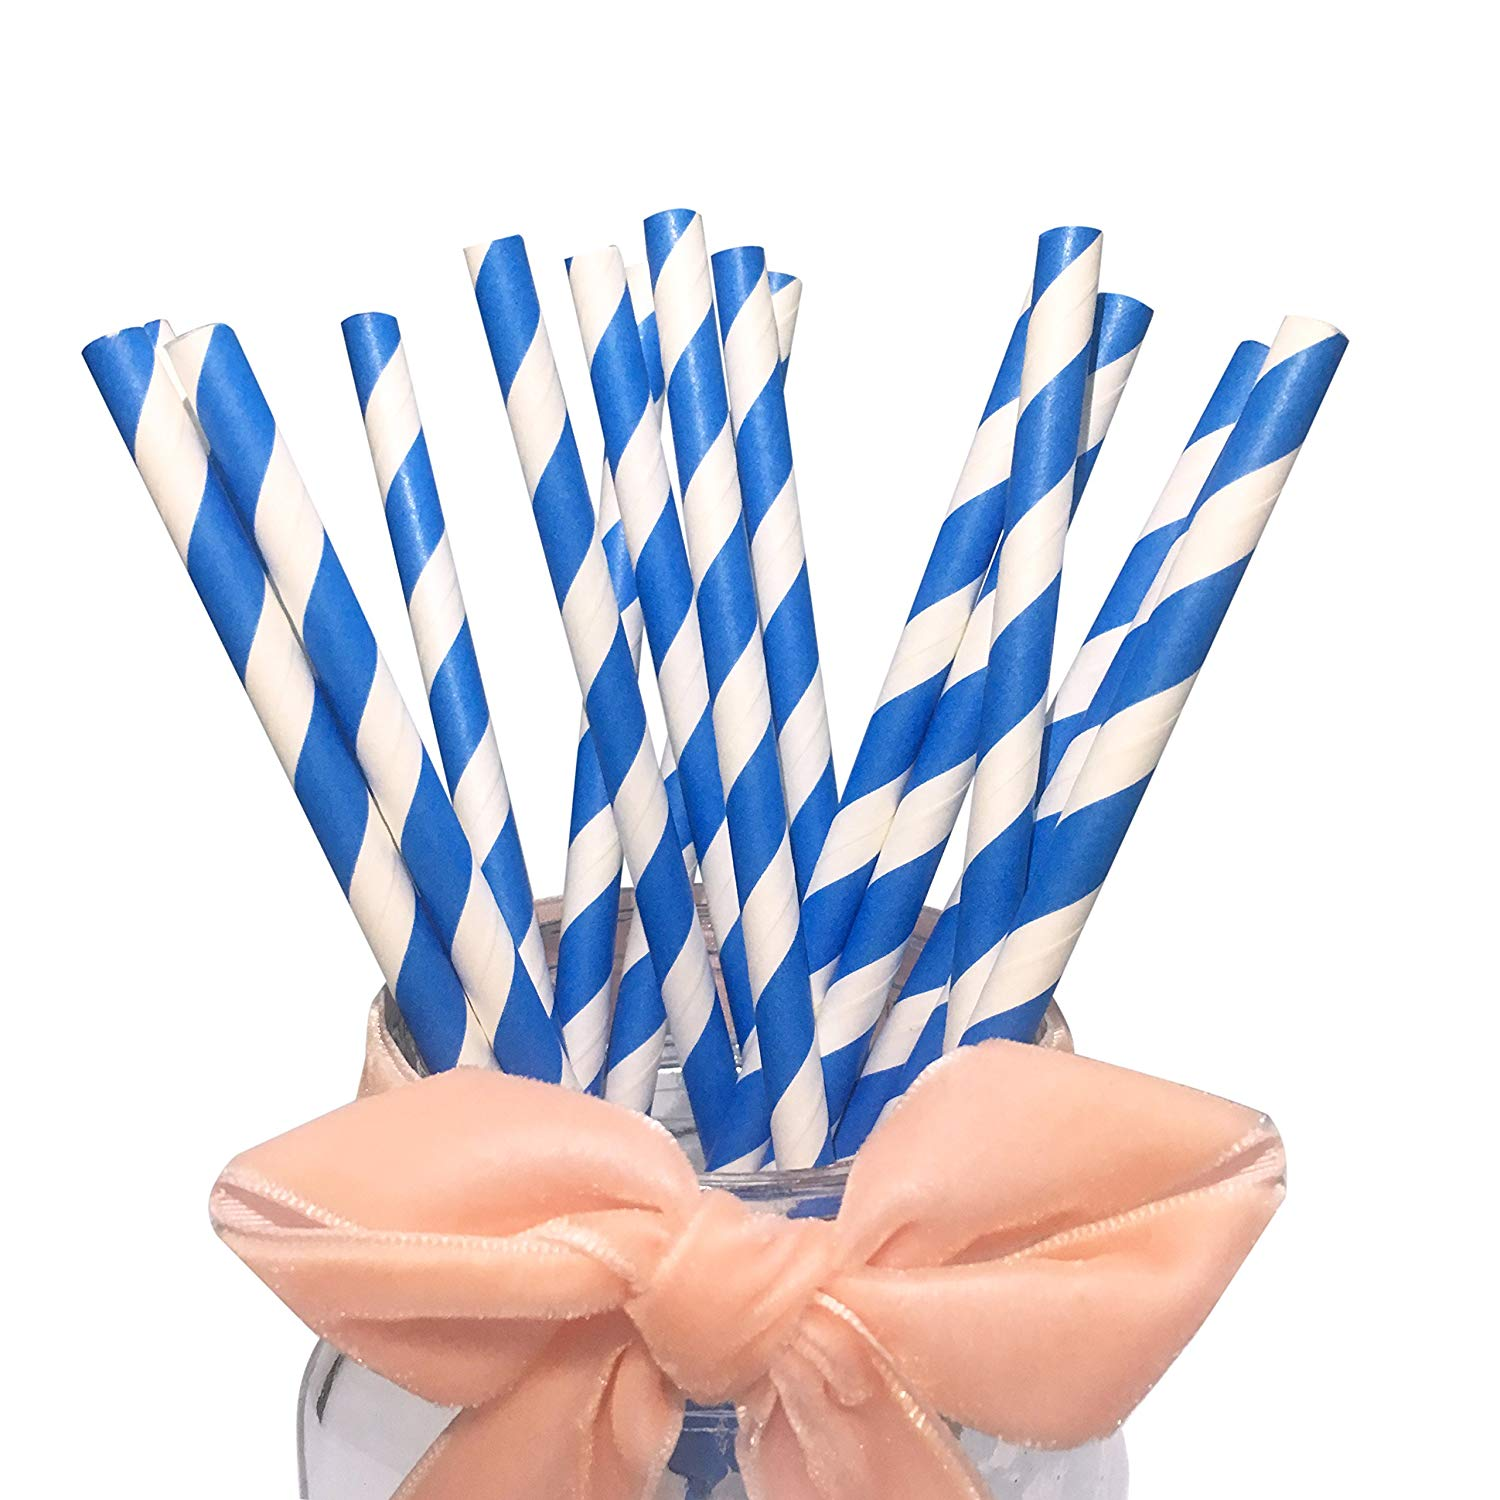 Paper Straw 5.75 Blue and White Stripe.- Cocktail Coffee Paper Straw. Pack of 5000 count